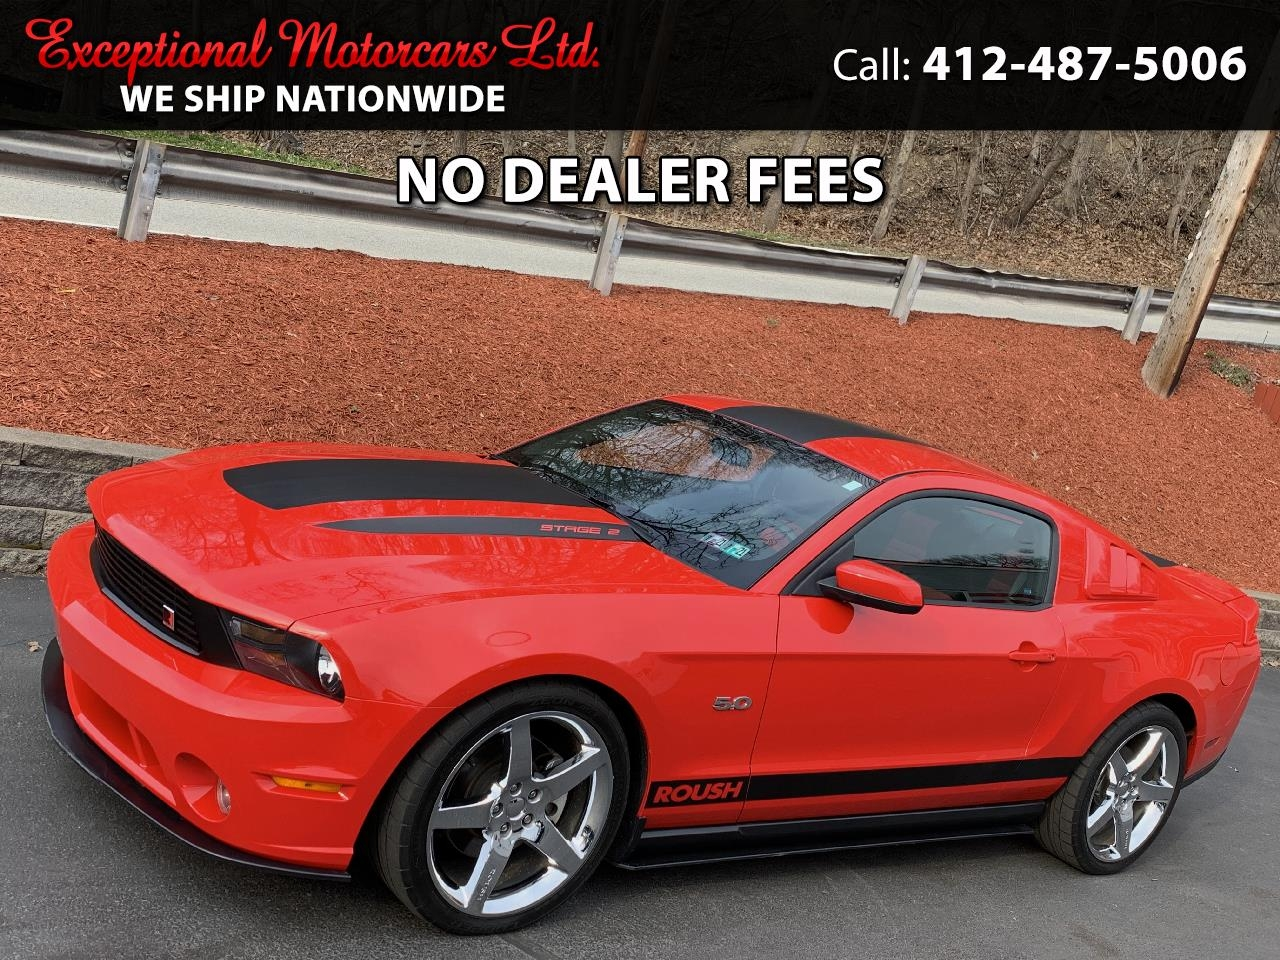 Ford Mustang 2dr Cpe GT 2011